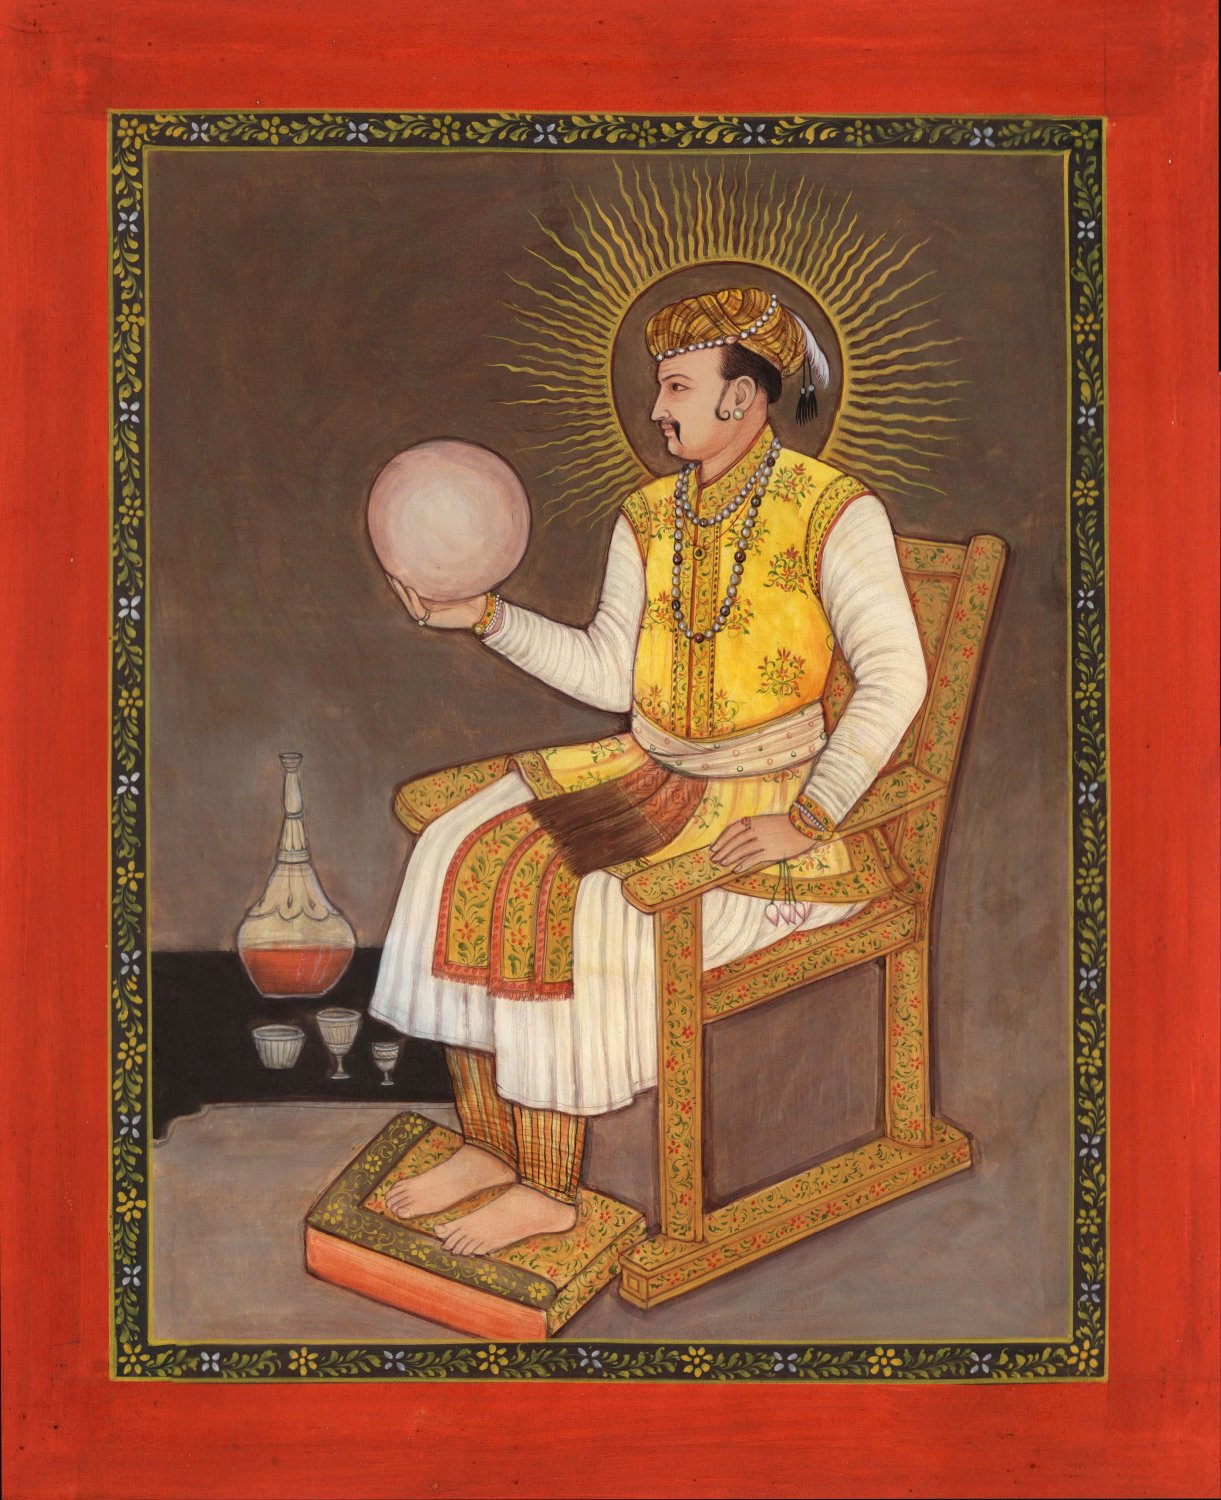 Jahangir Mughal Emperor Painting Handmade Indian Mogul Miniature Portrait Art